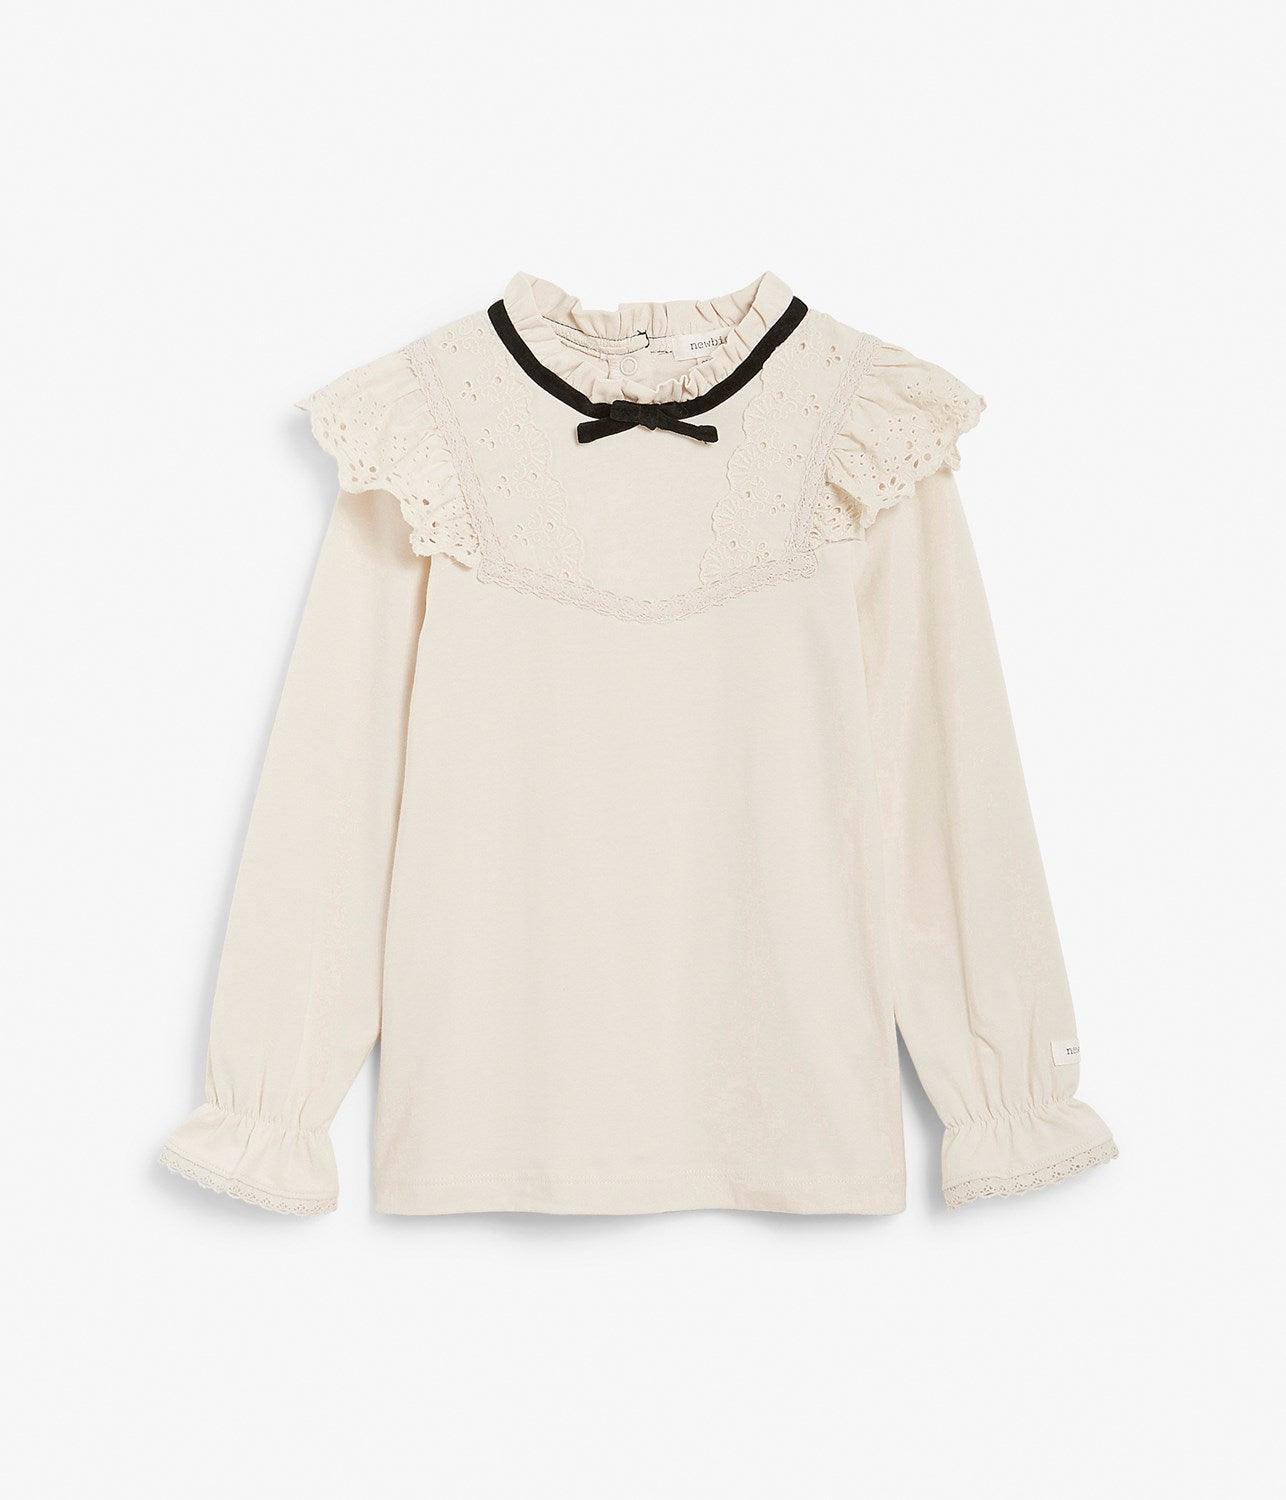 Kids cream top with lace ruffles & neck bow